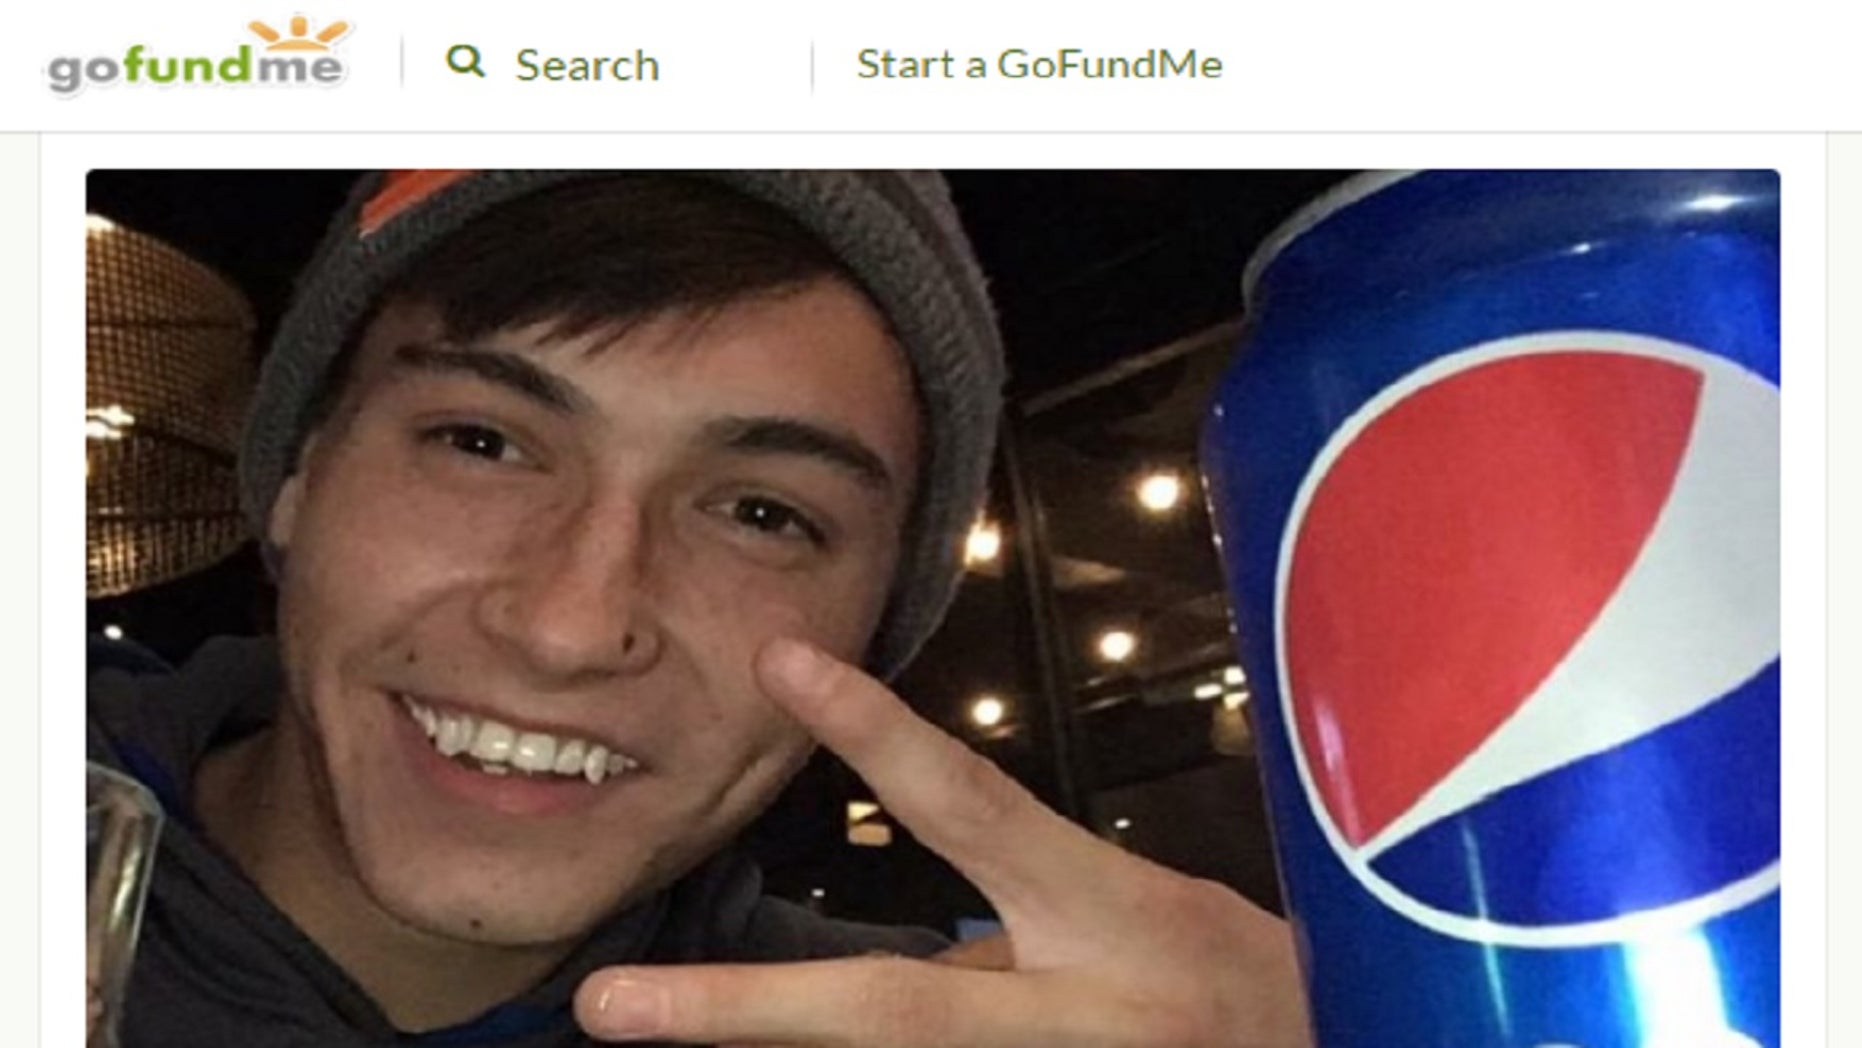 Scott Walsh, 22, is in critical condition after falling into a trash chute on Friday evening in Denver.